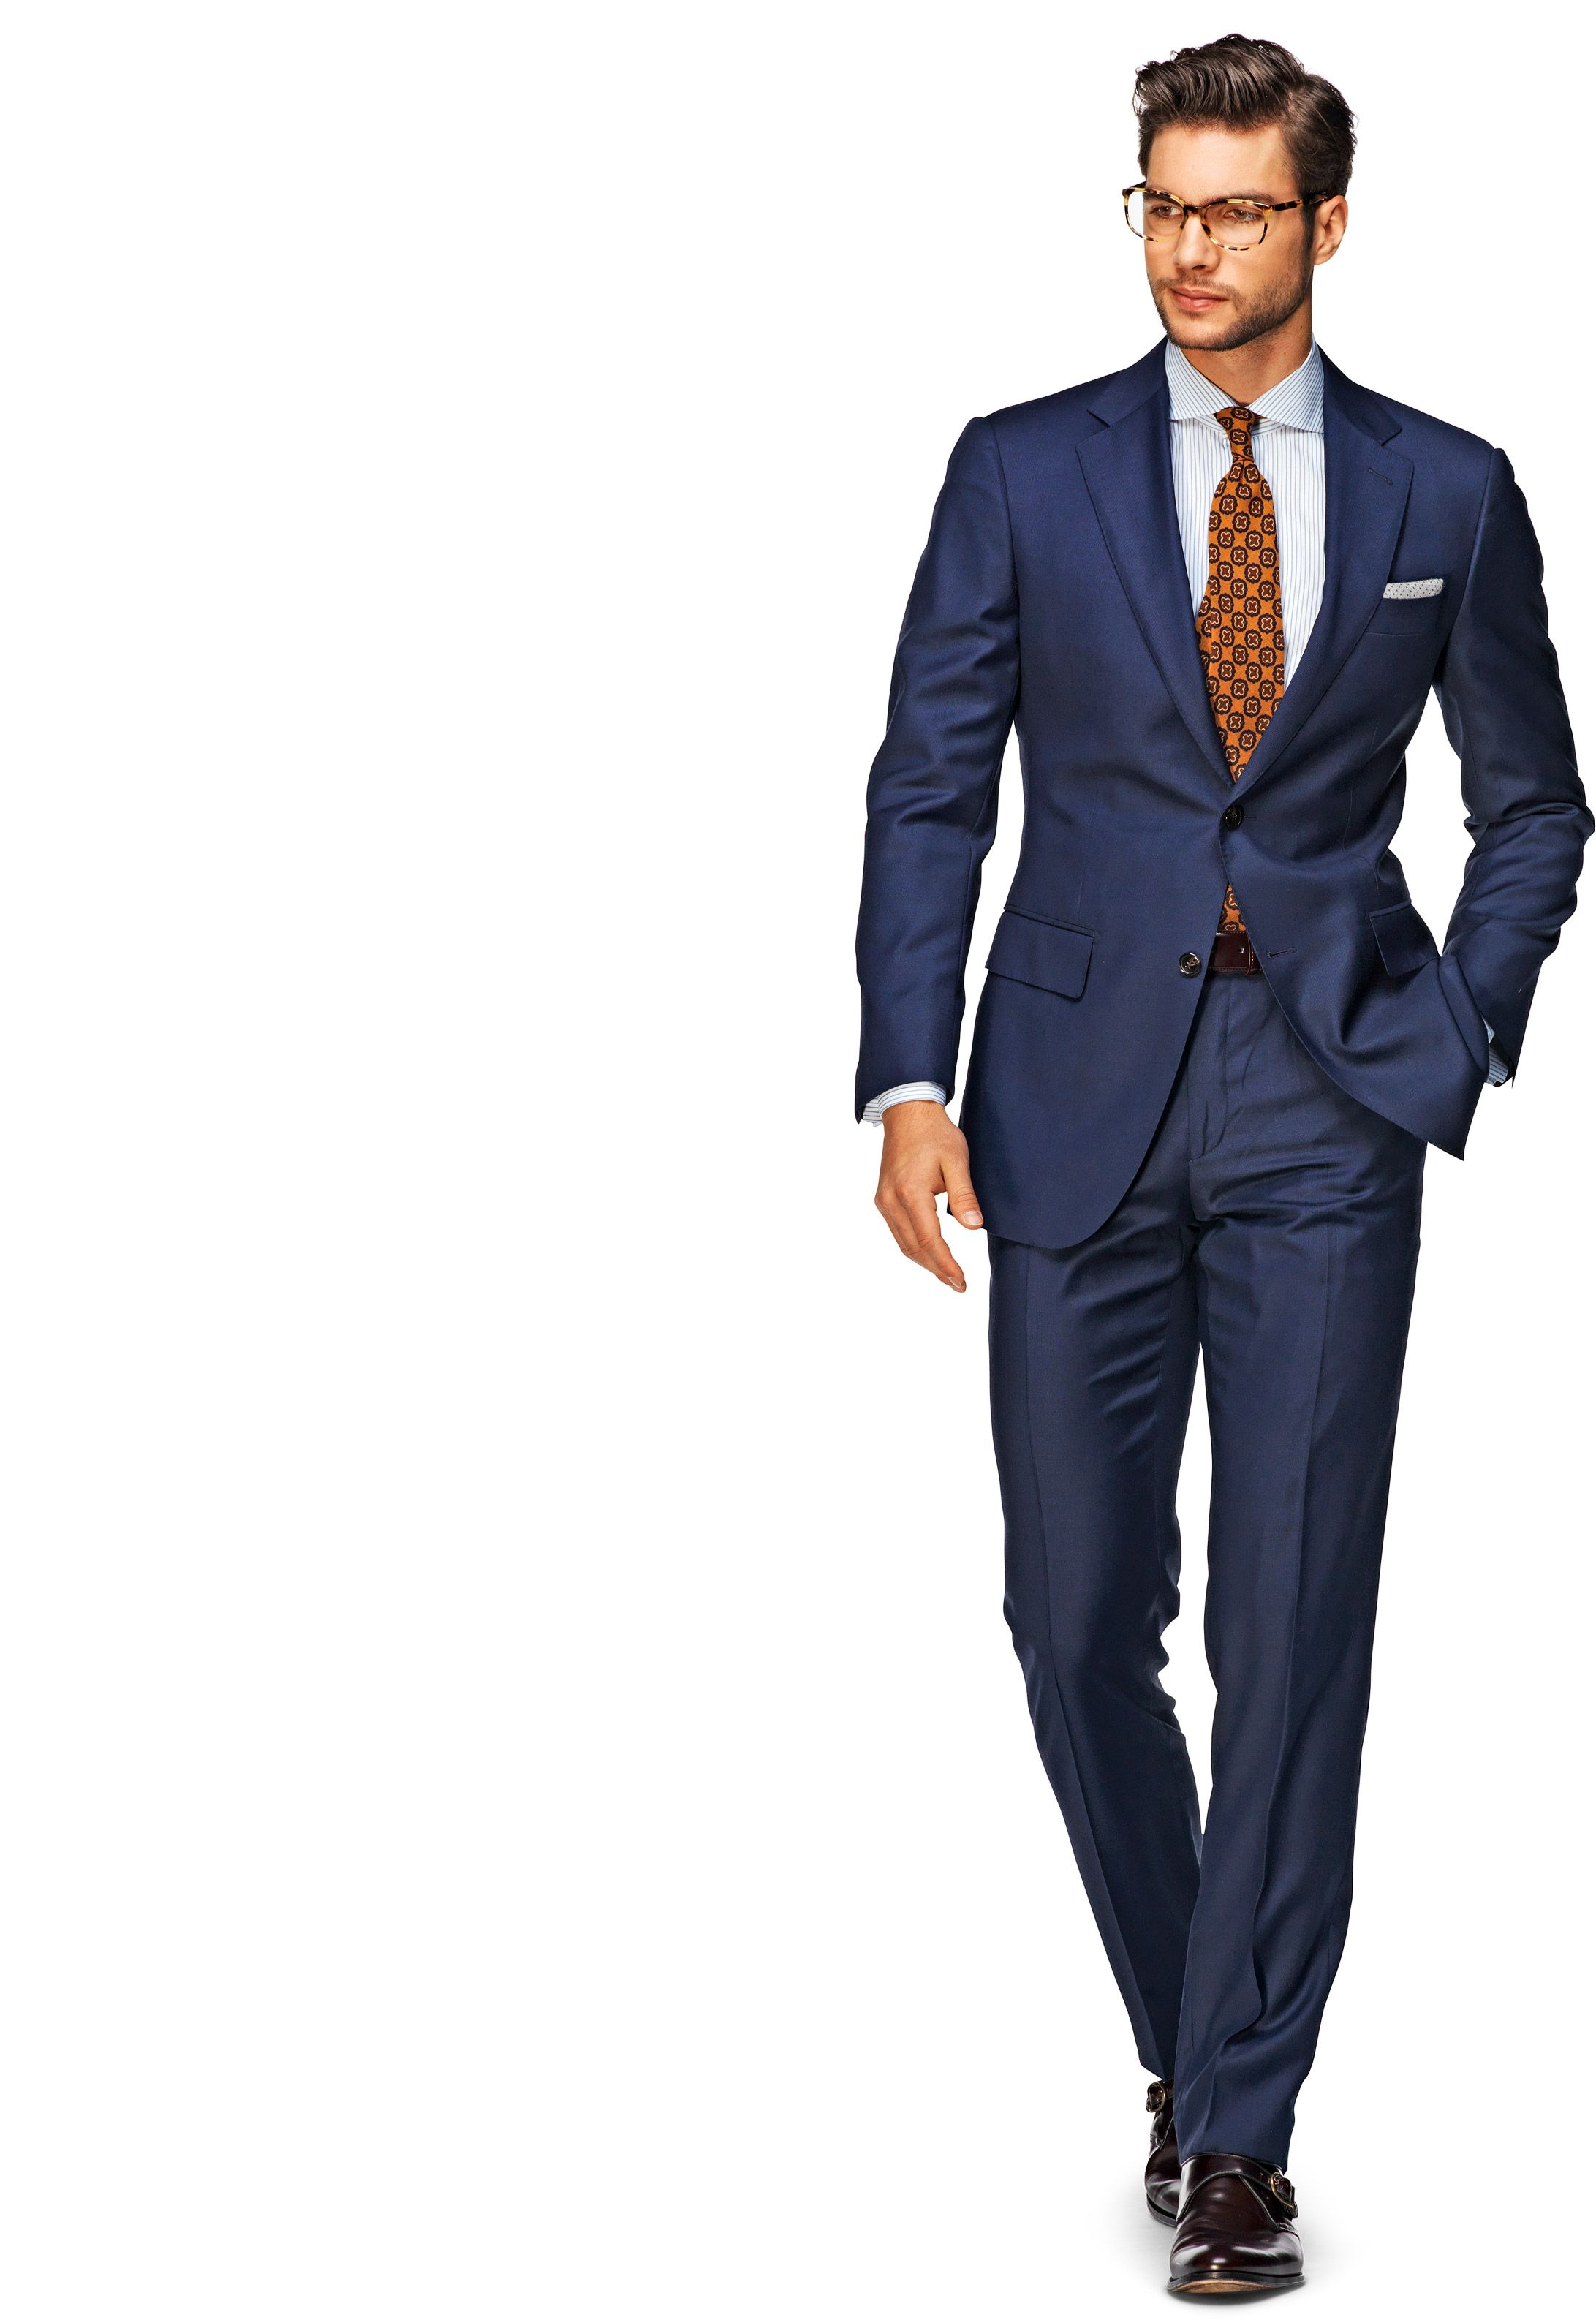 Menz Fashion - Men's Suits, Shirts, Ties, Bowties, and 9